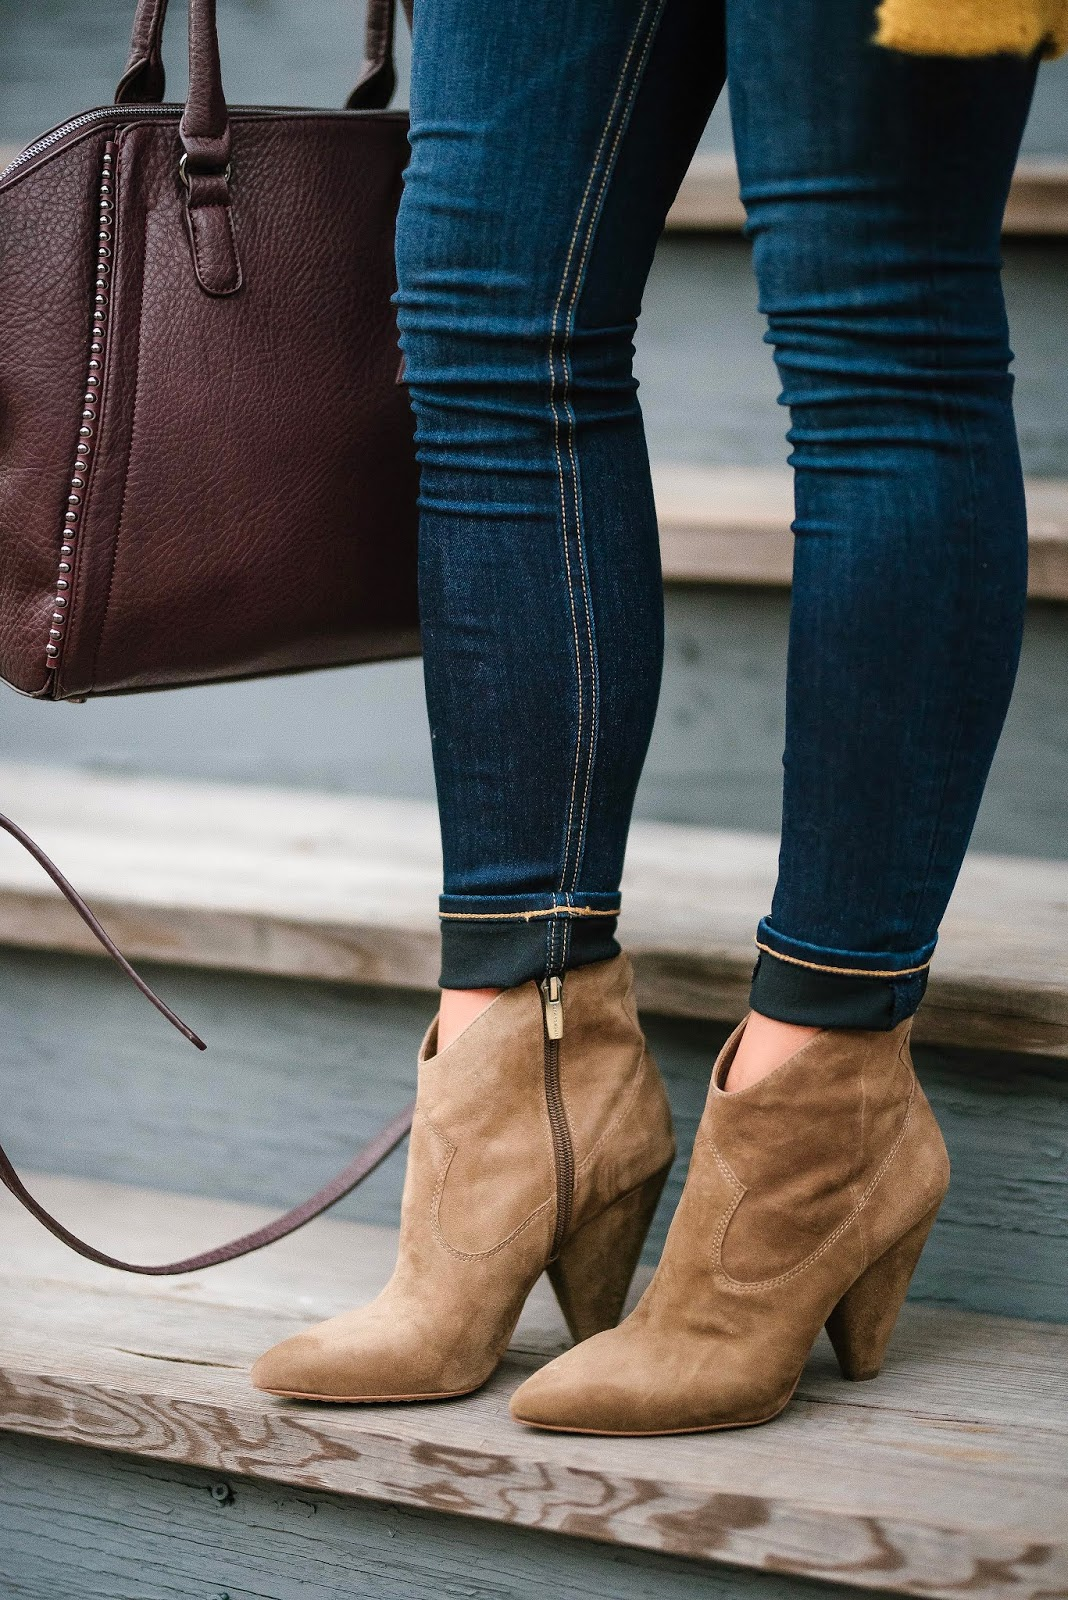 Western Style Booties (that are 40% off!) - Something Delightful Blog